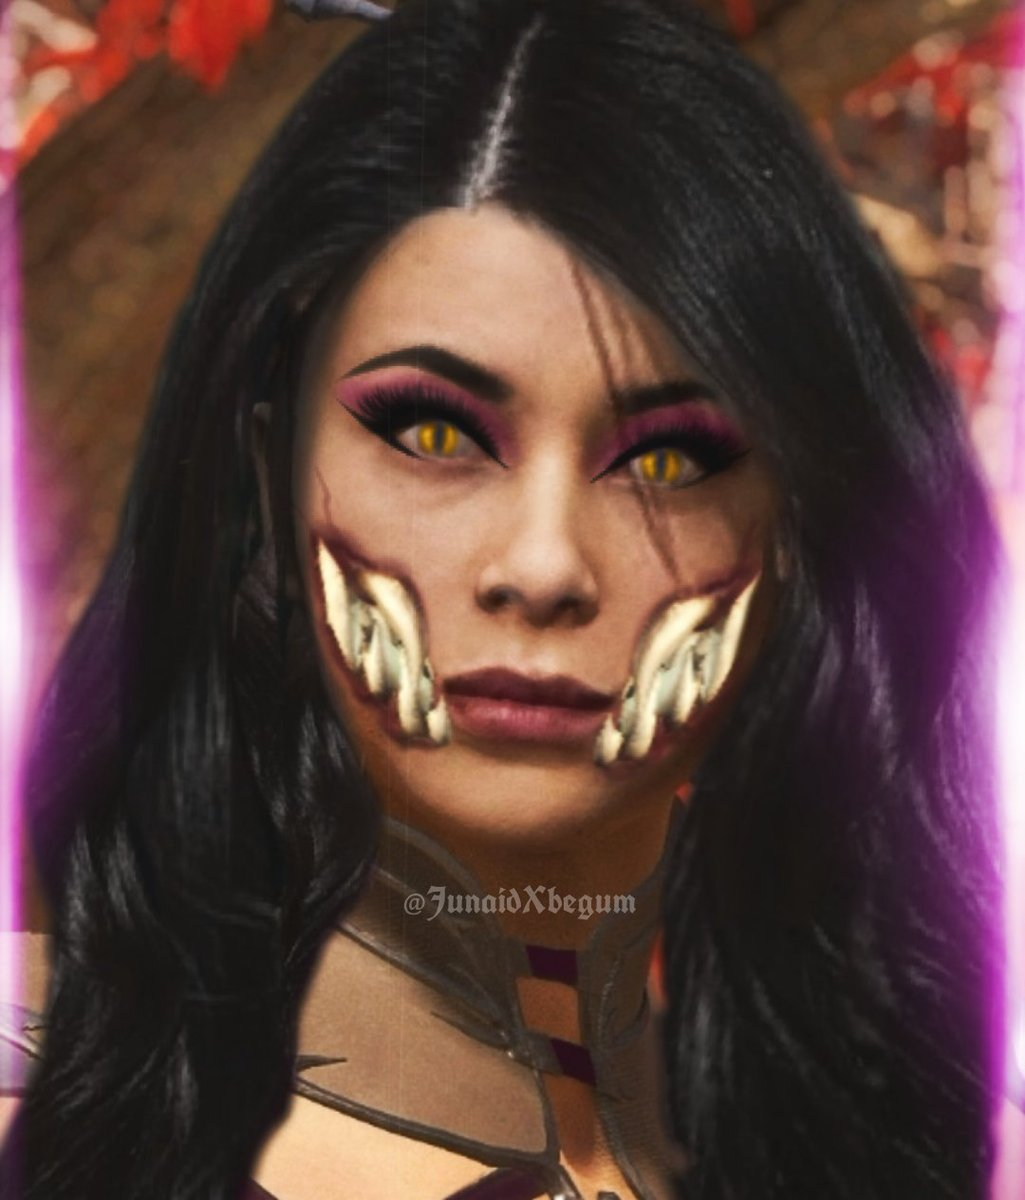 Here's another Mileena edit   I merged kaprices face with another face model so it doesn't look too much like kitana.   #mileena #MK11 #mk #MortalKombat11 #hybrid pic.twitter.com/S89S6lJ71E